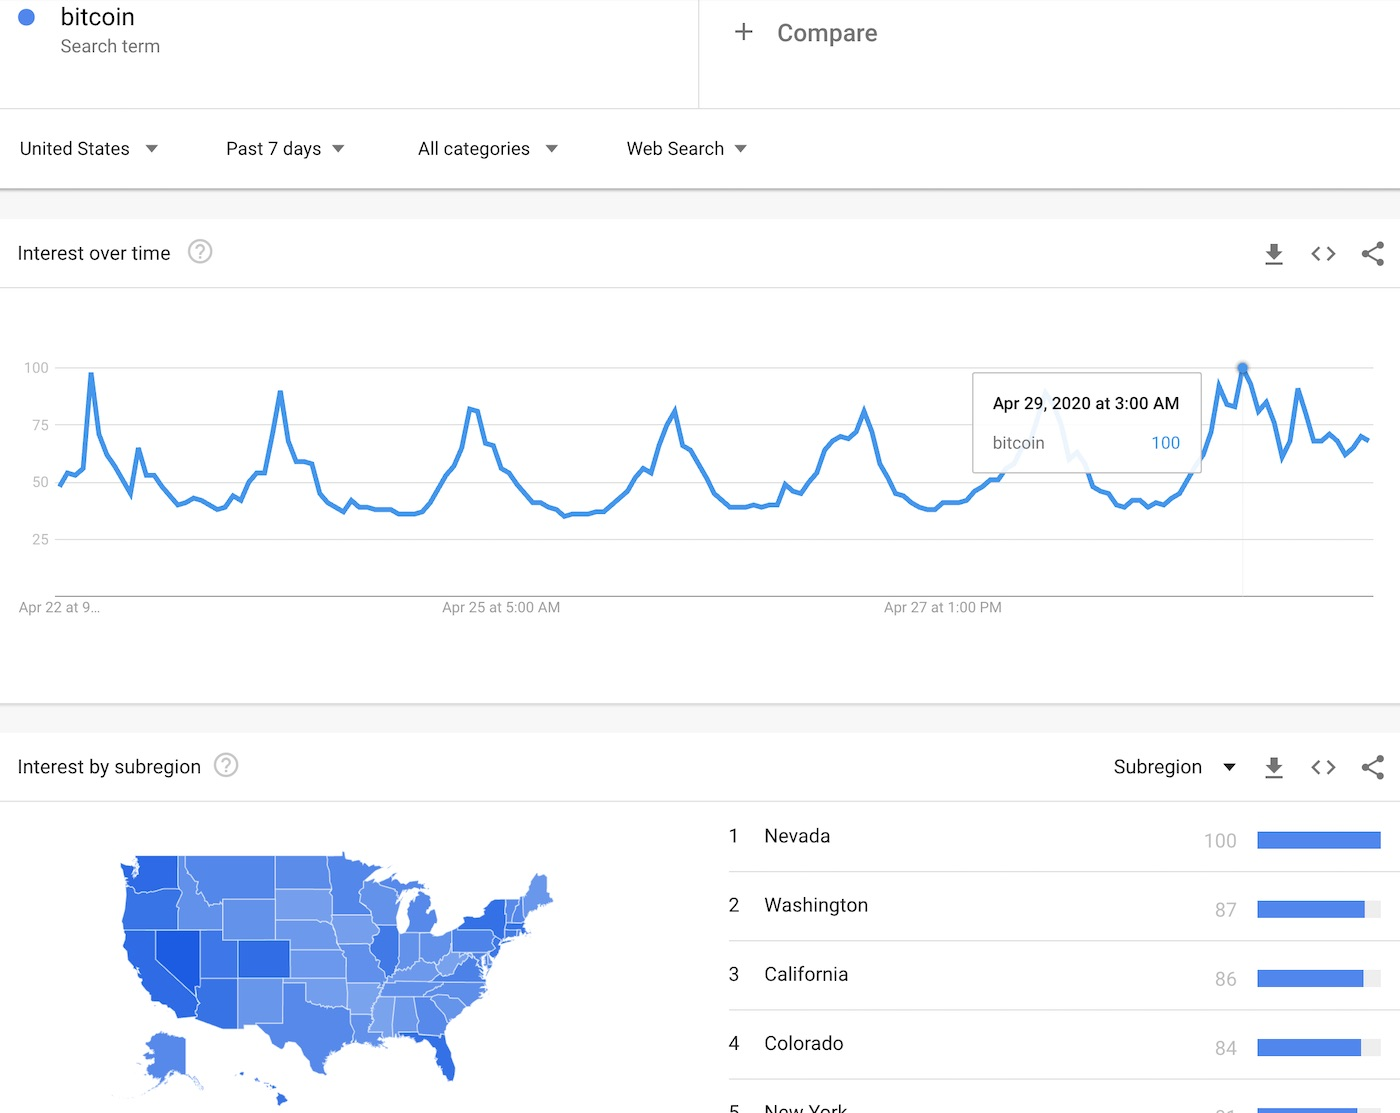 The Google Trends for Bitcoin, United States, shows more frequent hourly spikes in searches but no greater than seen a week ago.